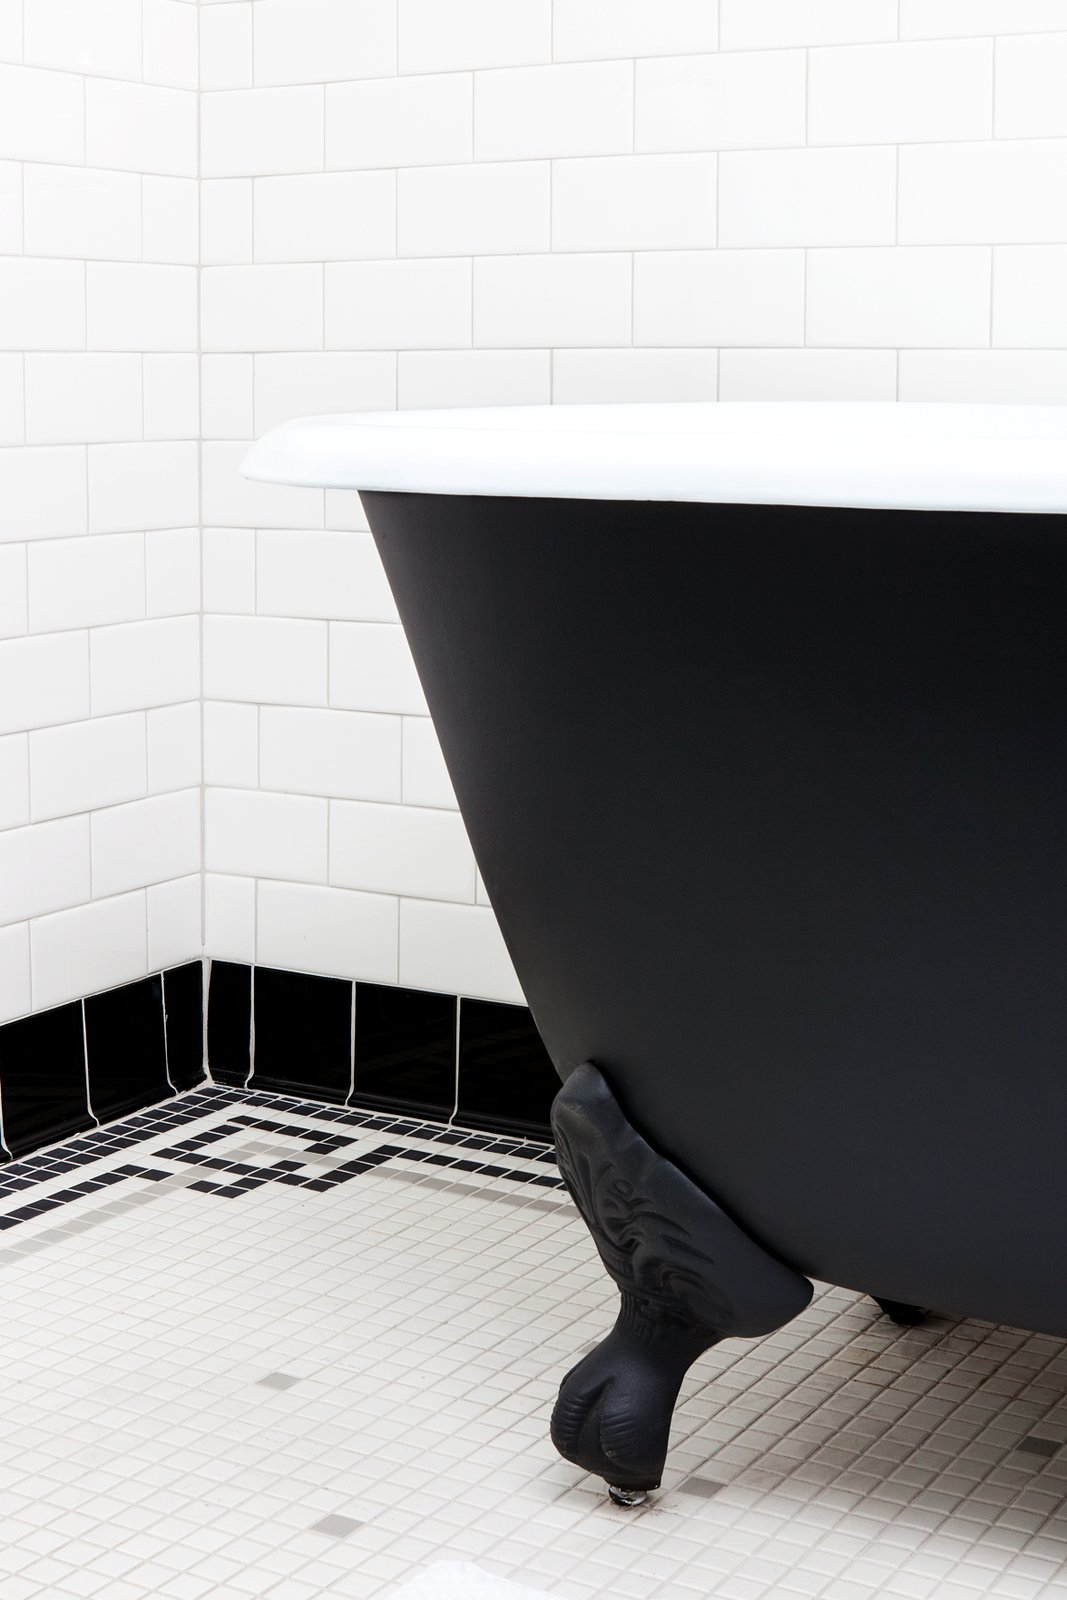 Bath Room, Subway Tile Wall, Freestanding Tub, and Ceramic Tile Floor Brass fixtures and soaking claw foot tubs in the bathrooms give a classic feel to the modern hotel experience.  Photo 9 of 18 in Lokal: A Classic Hotel with a Modern Invisible Service